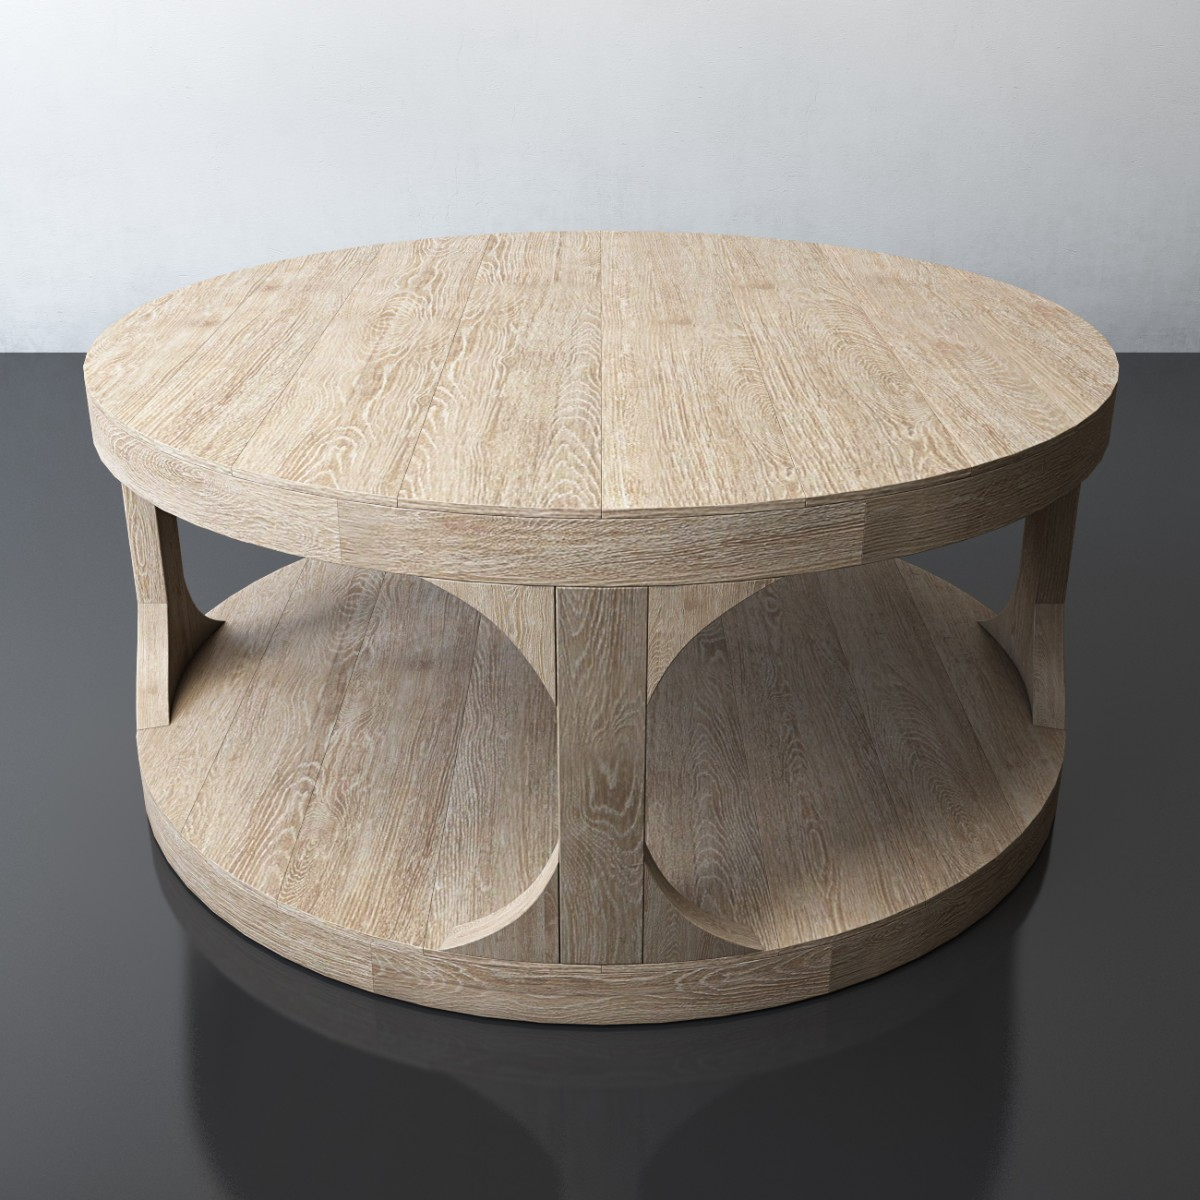 Martens Round Coffee Table 3d Model For Vray